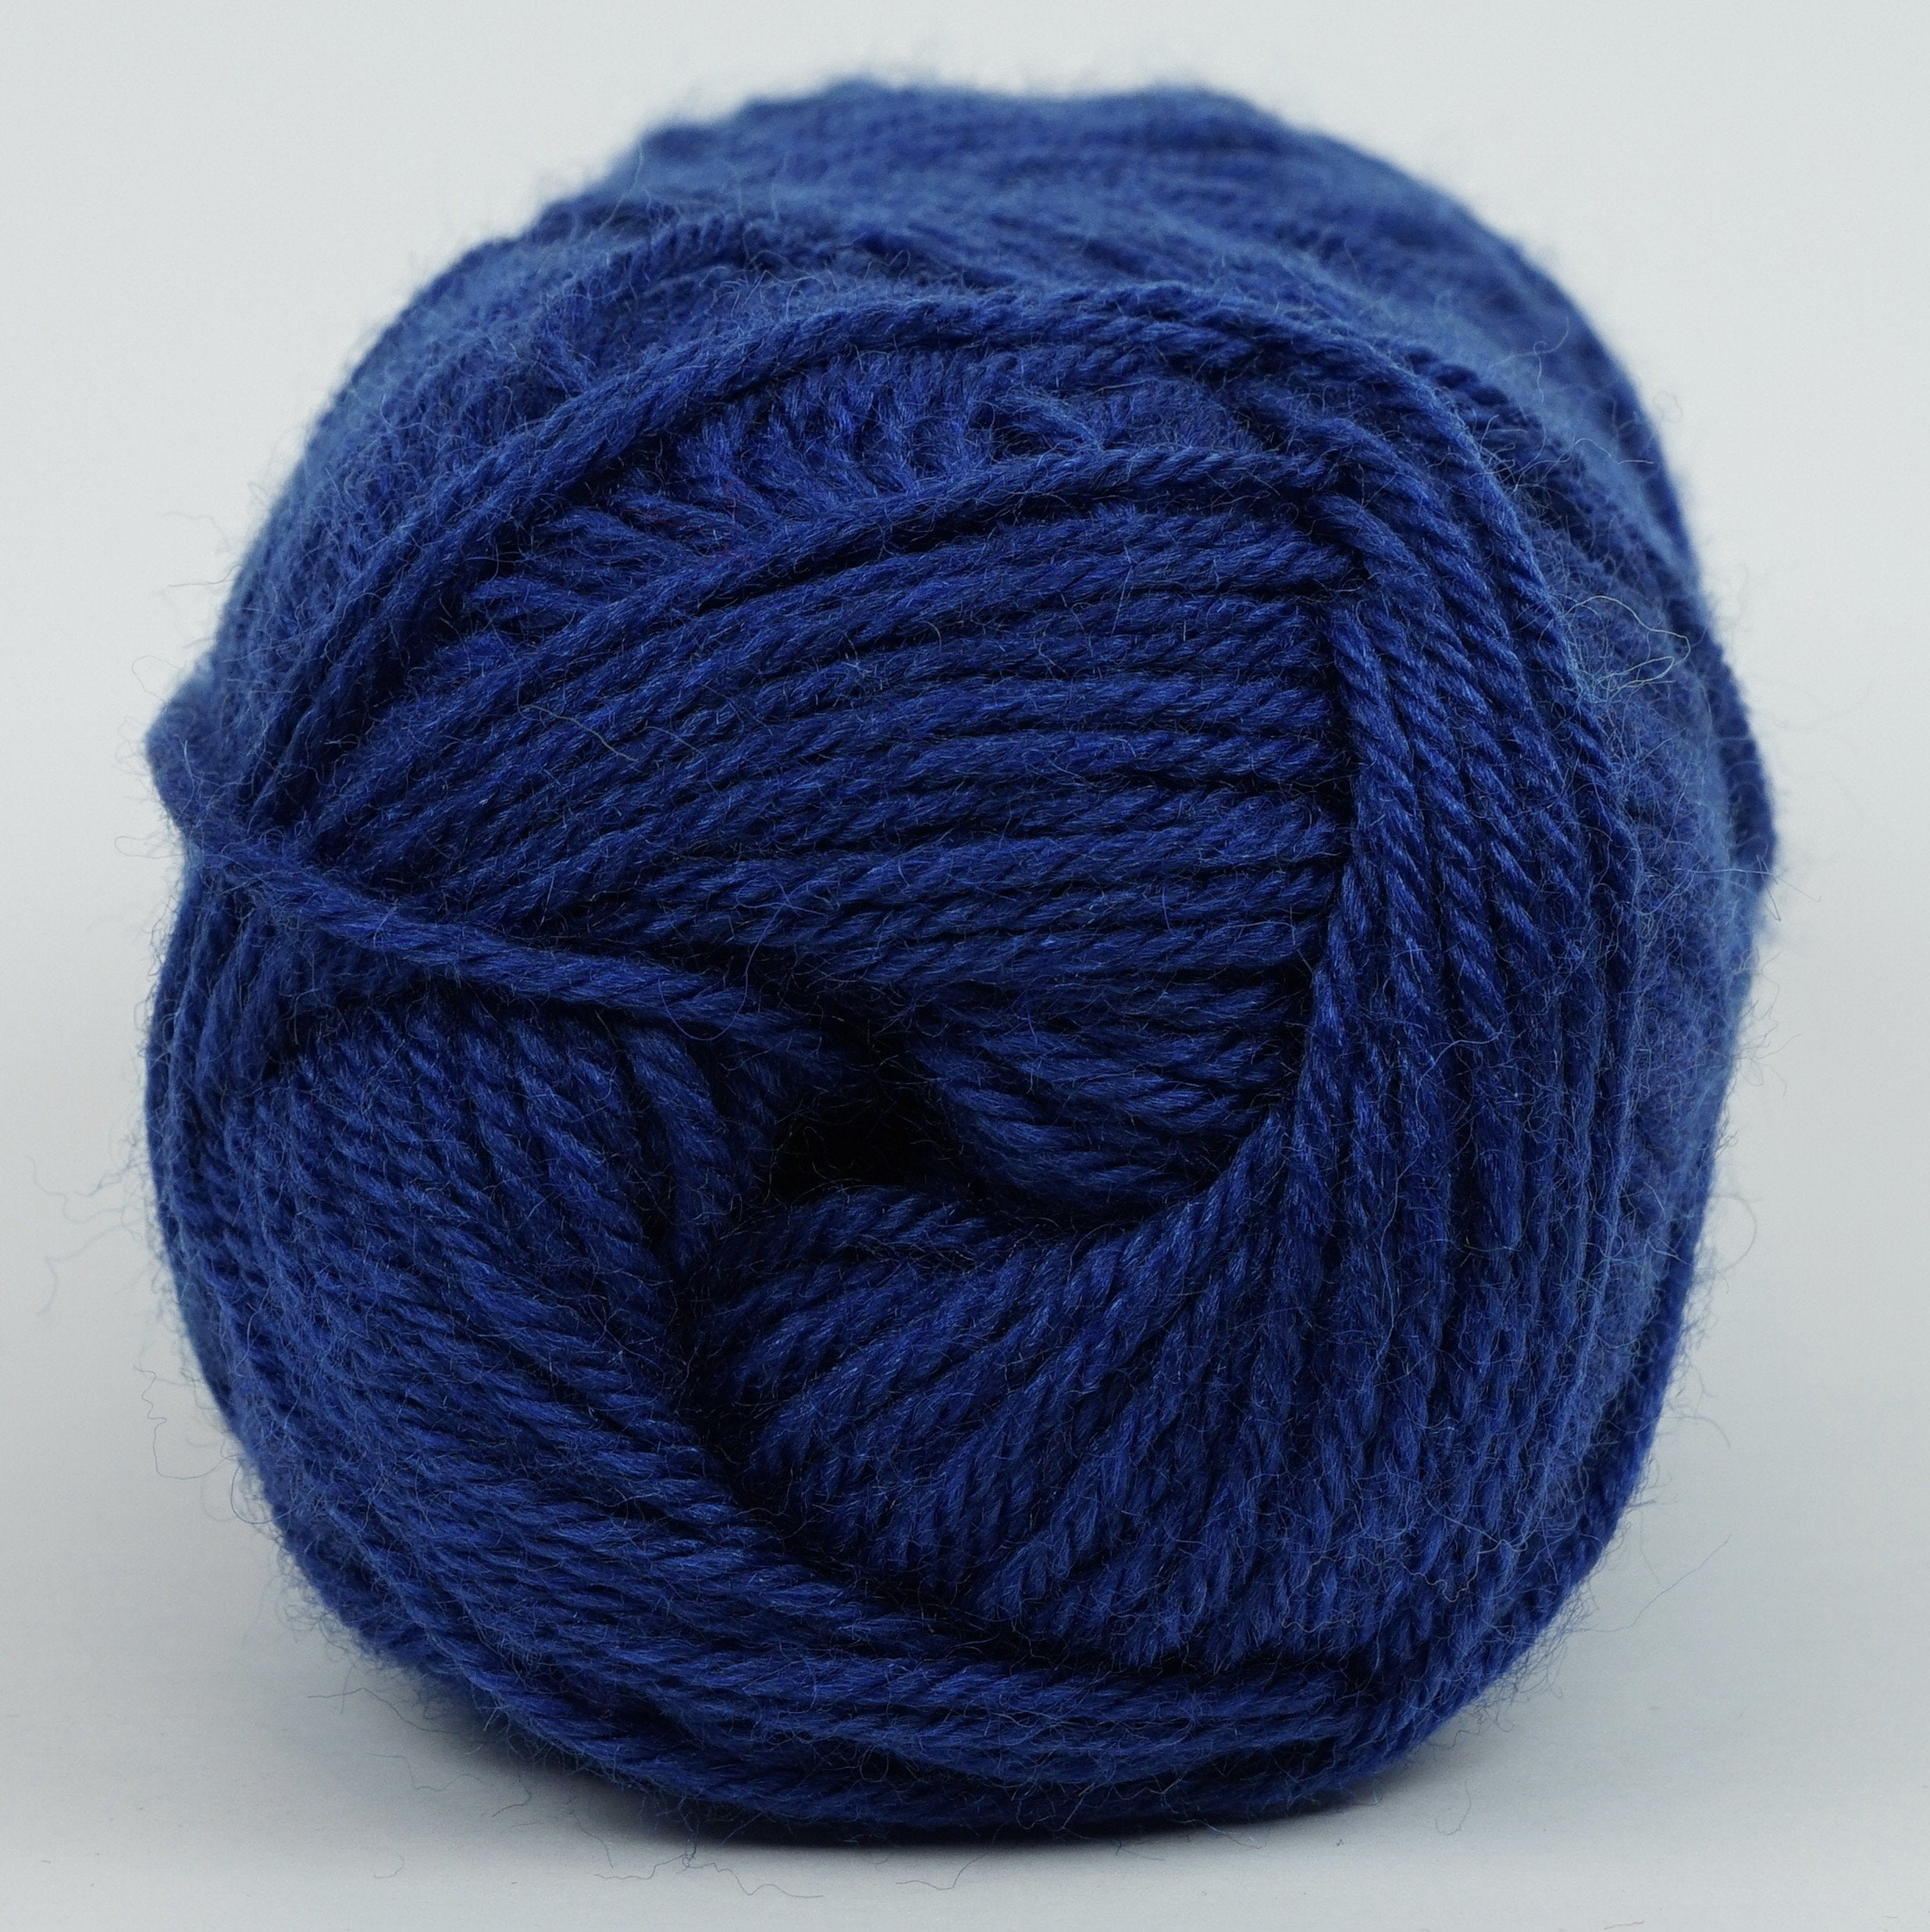 Kraemer Perfection Worsted Bright Blue